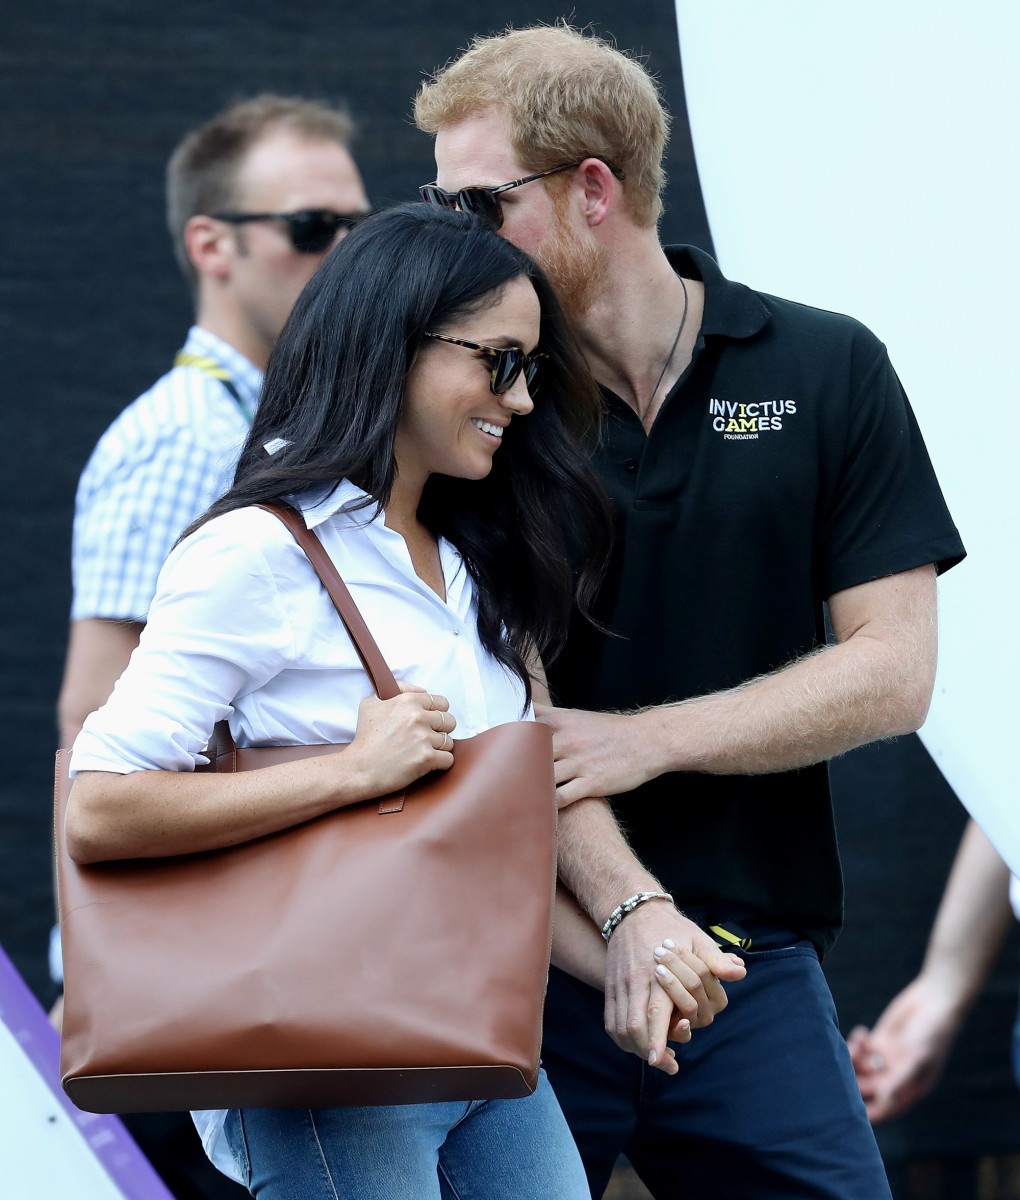 Prince Harry and girlfriend Meghan Markle at the Invictus Games in 2017